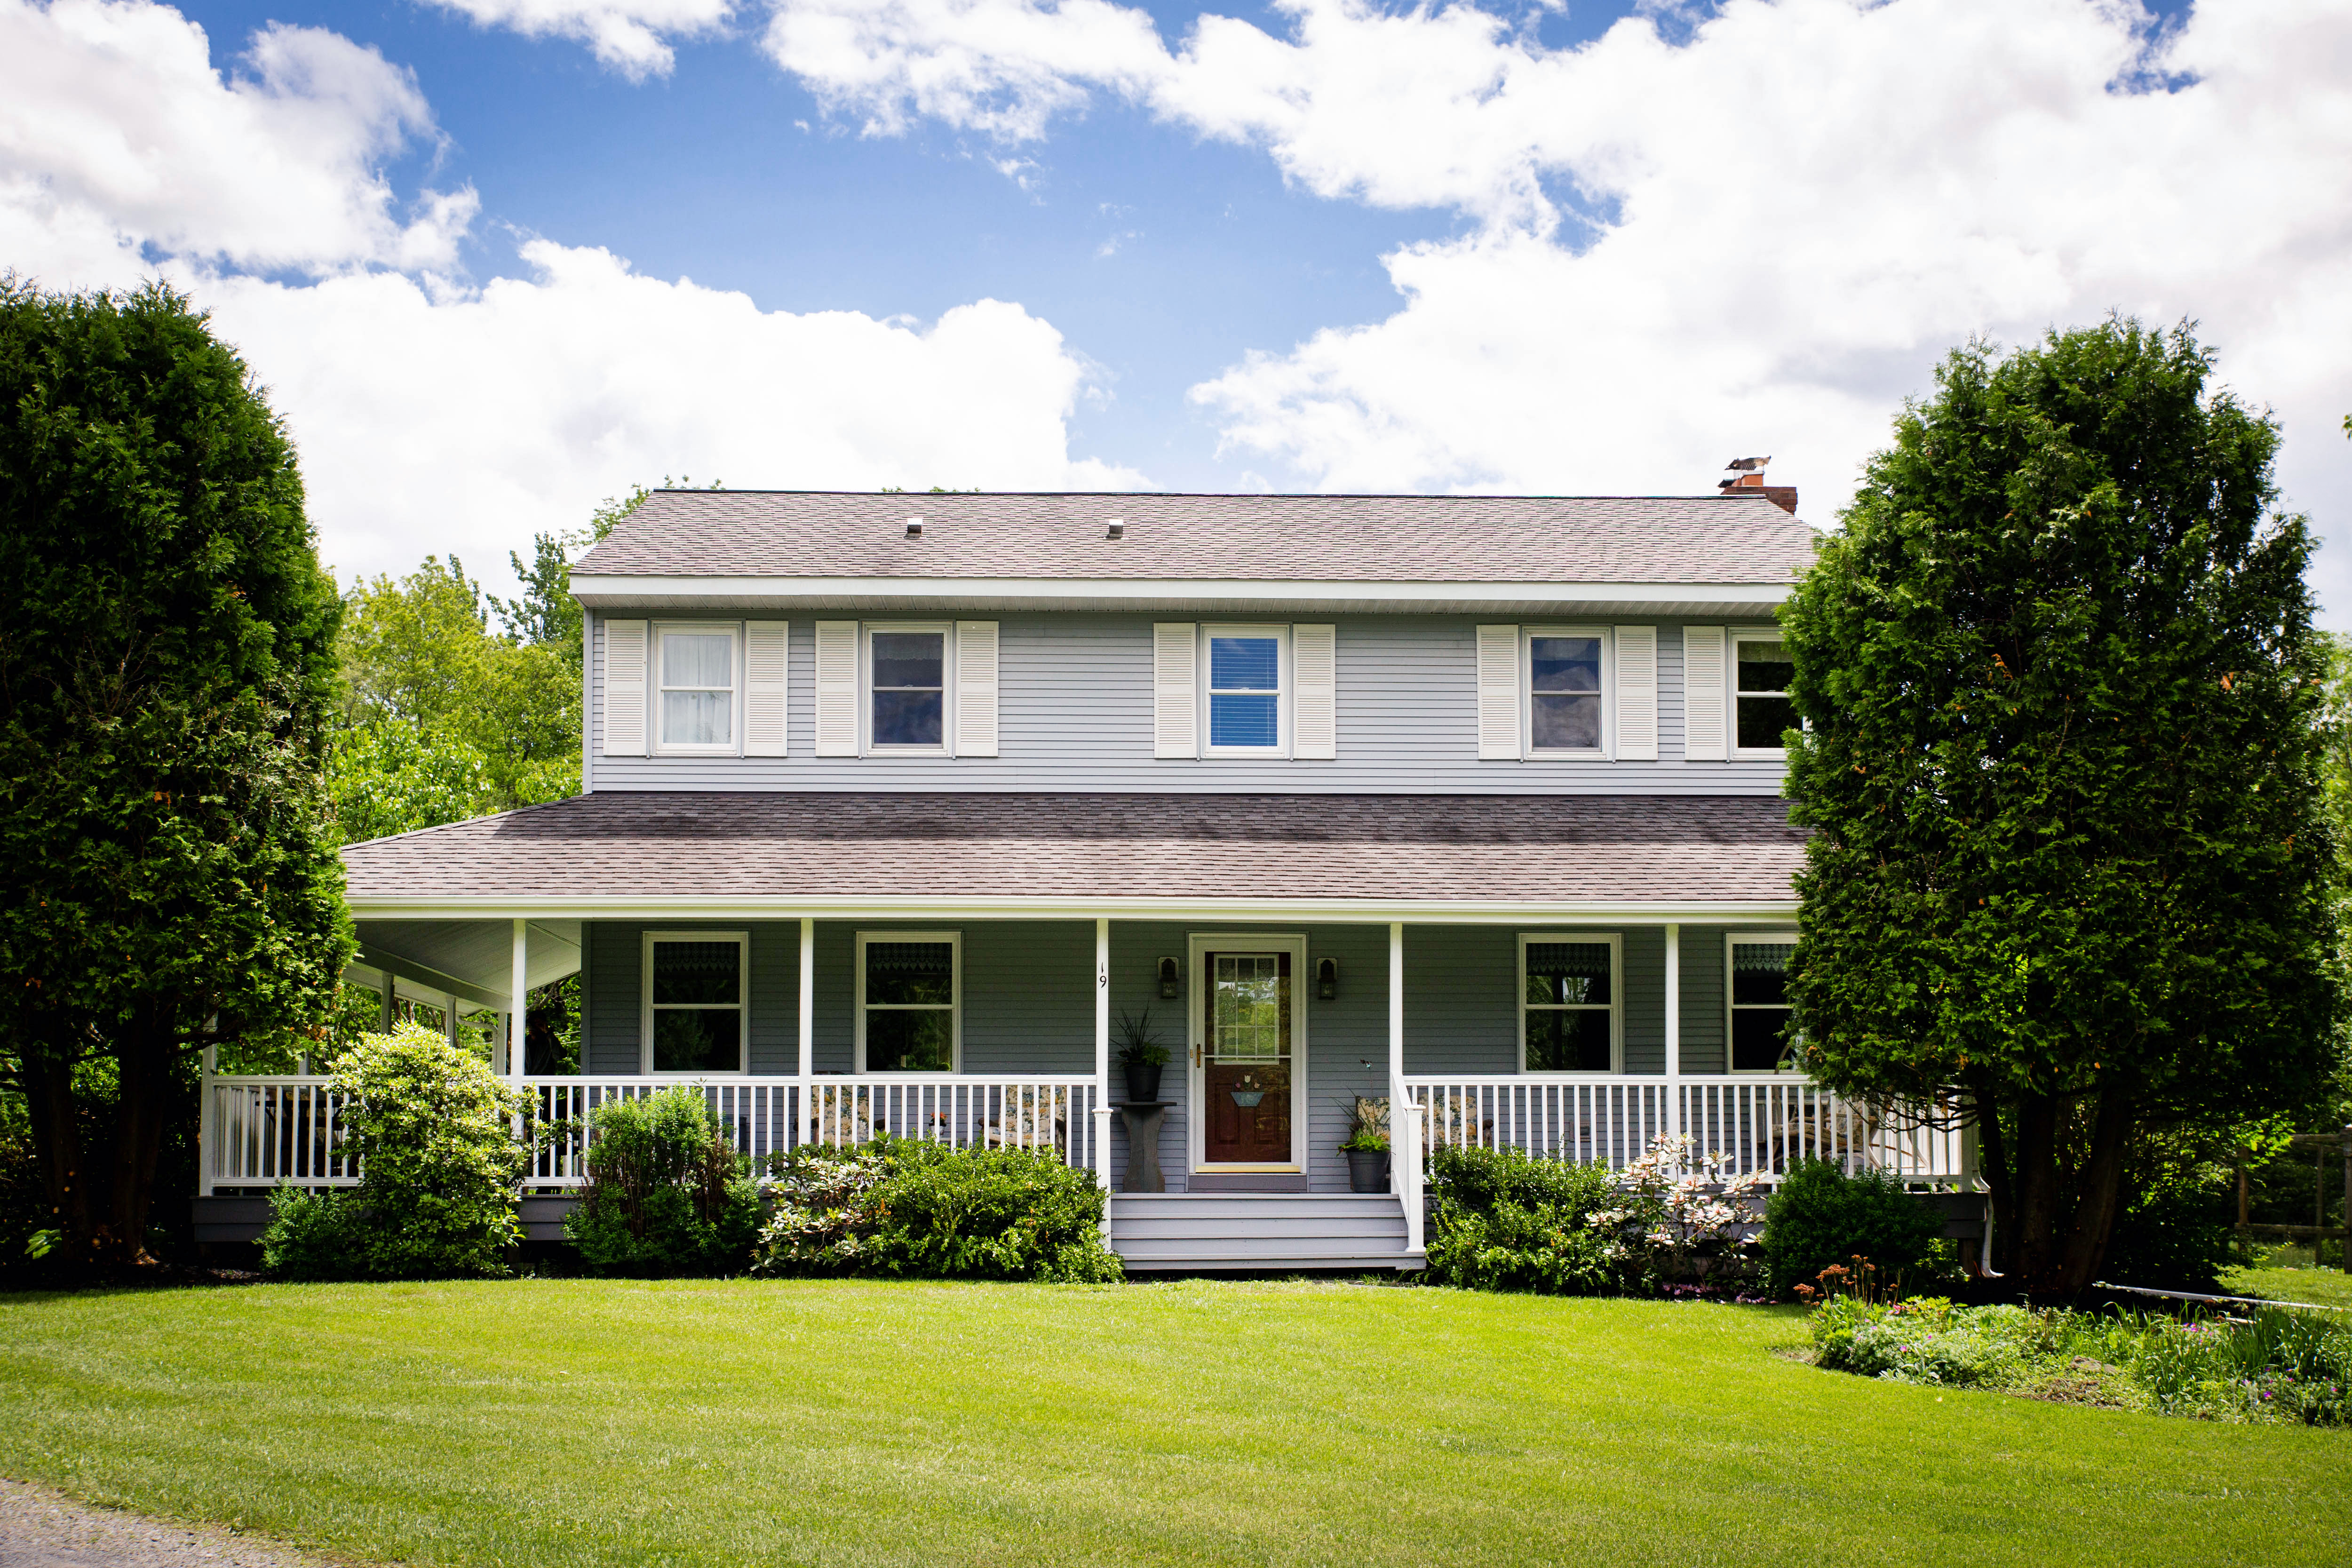 Single Family Home for sale in 19 Deer Meadow Lane, Delmar, NY ,12054